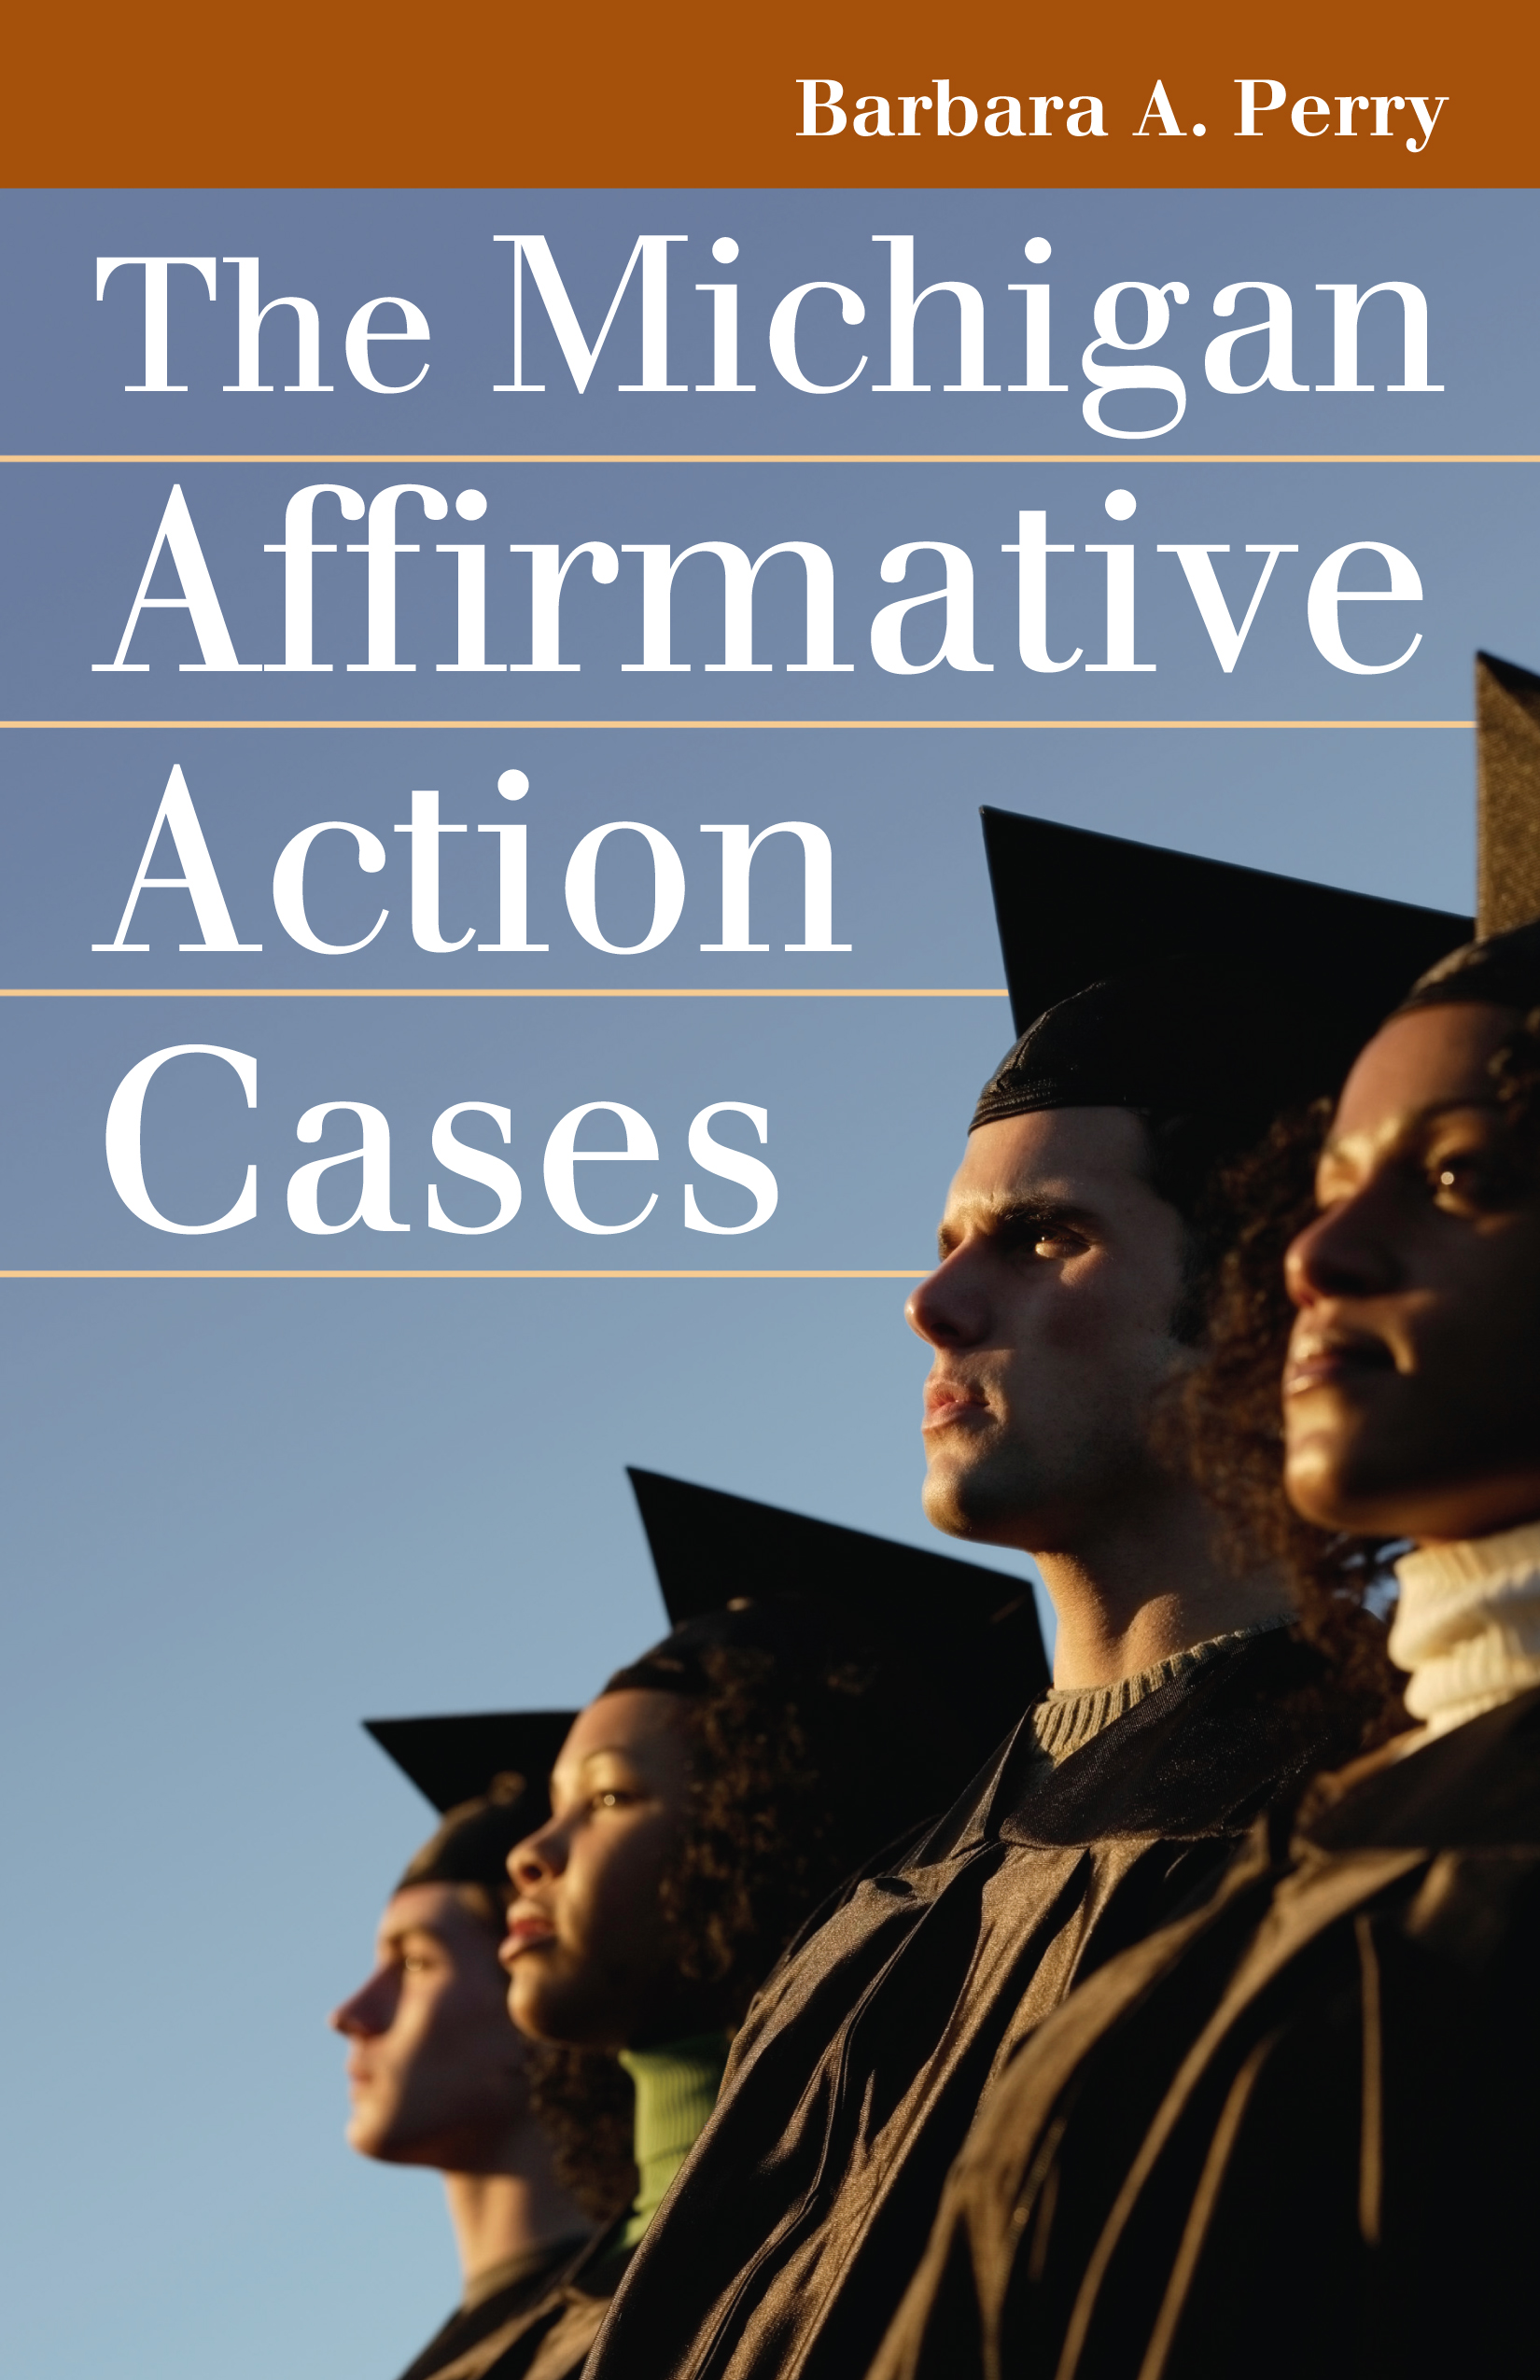 affirmative action laws essay Affirmative action: pros and cons the tools you need to write a quality essay or term paper the law that i chose to do was affirmative action.